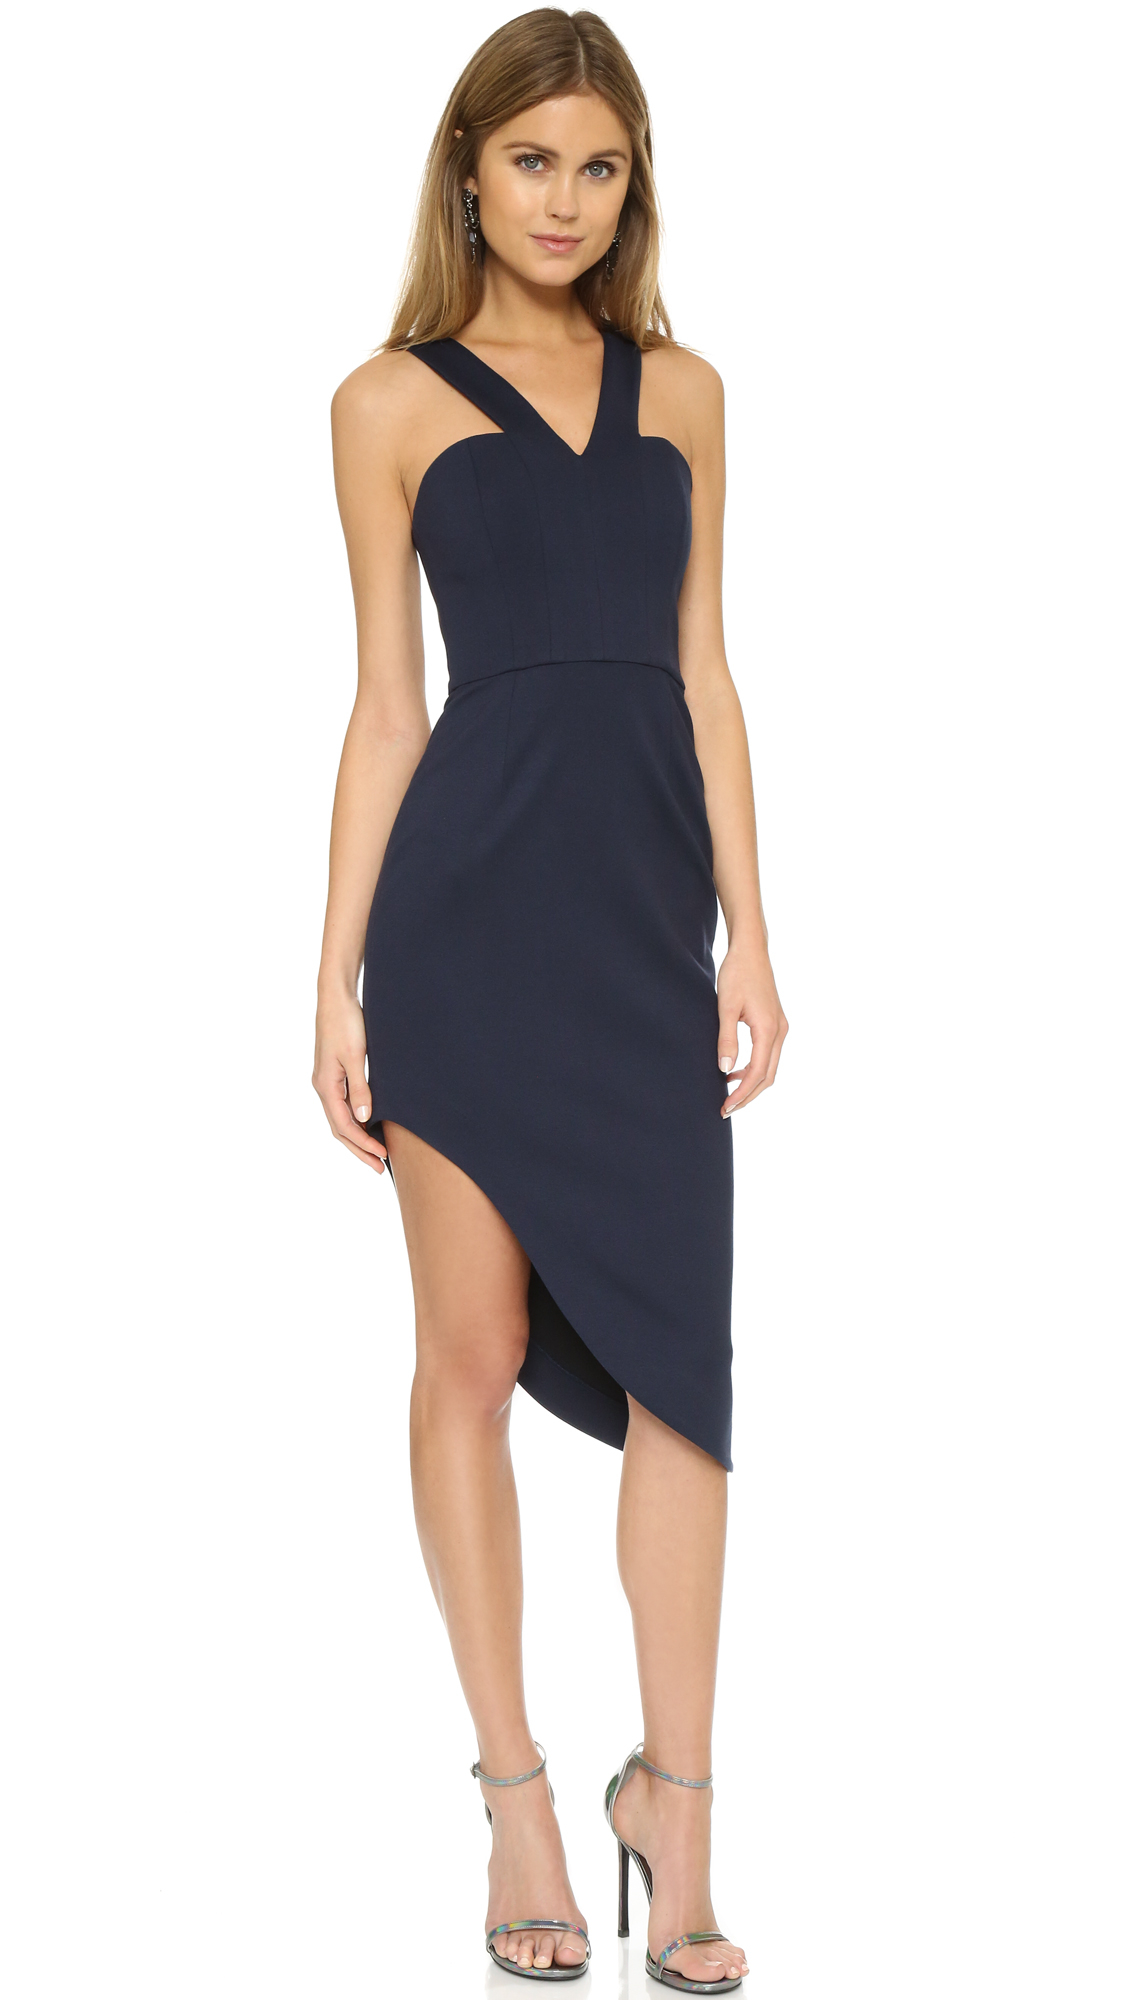 f1dc700878 Nicholas N   Ponte Side Curve Strap Dress in Blue - Lyst